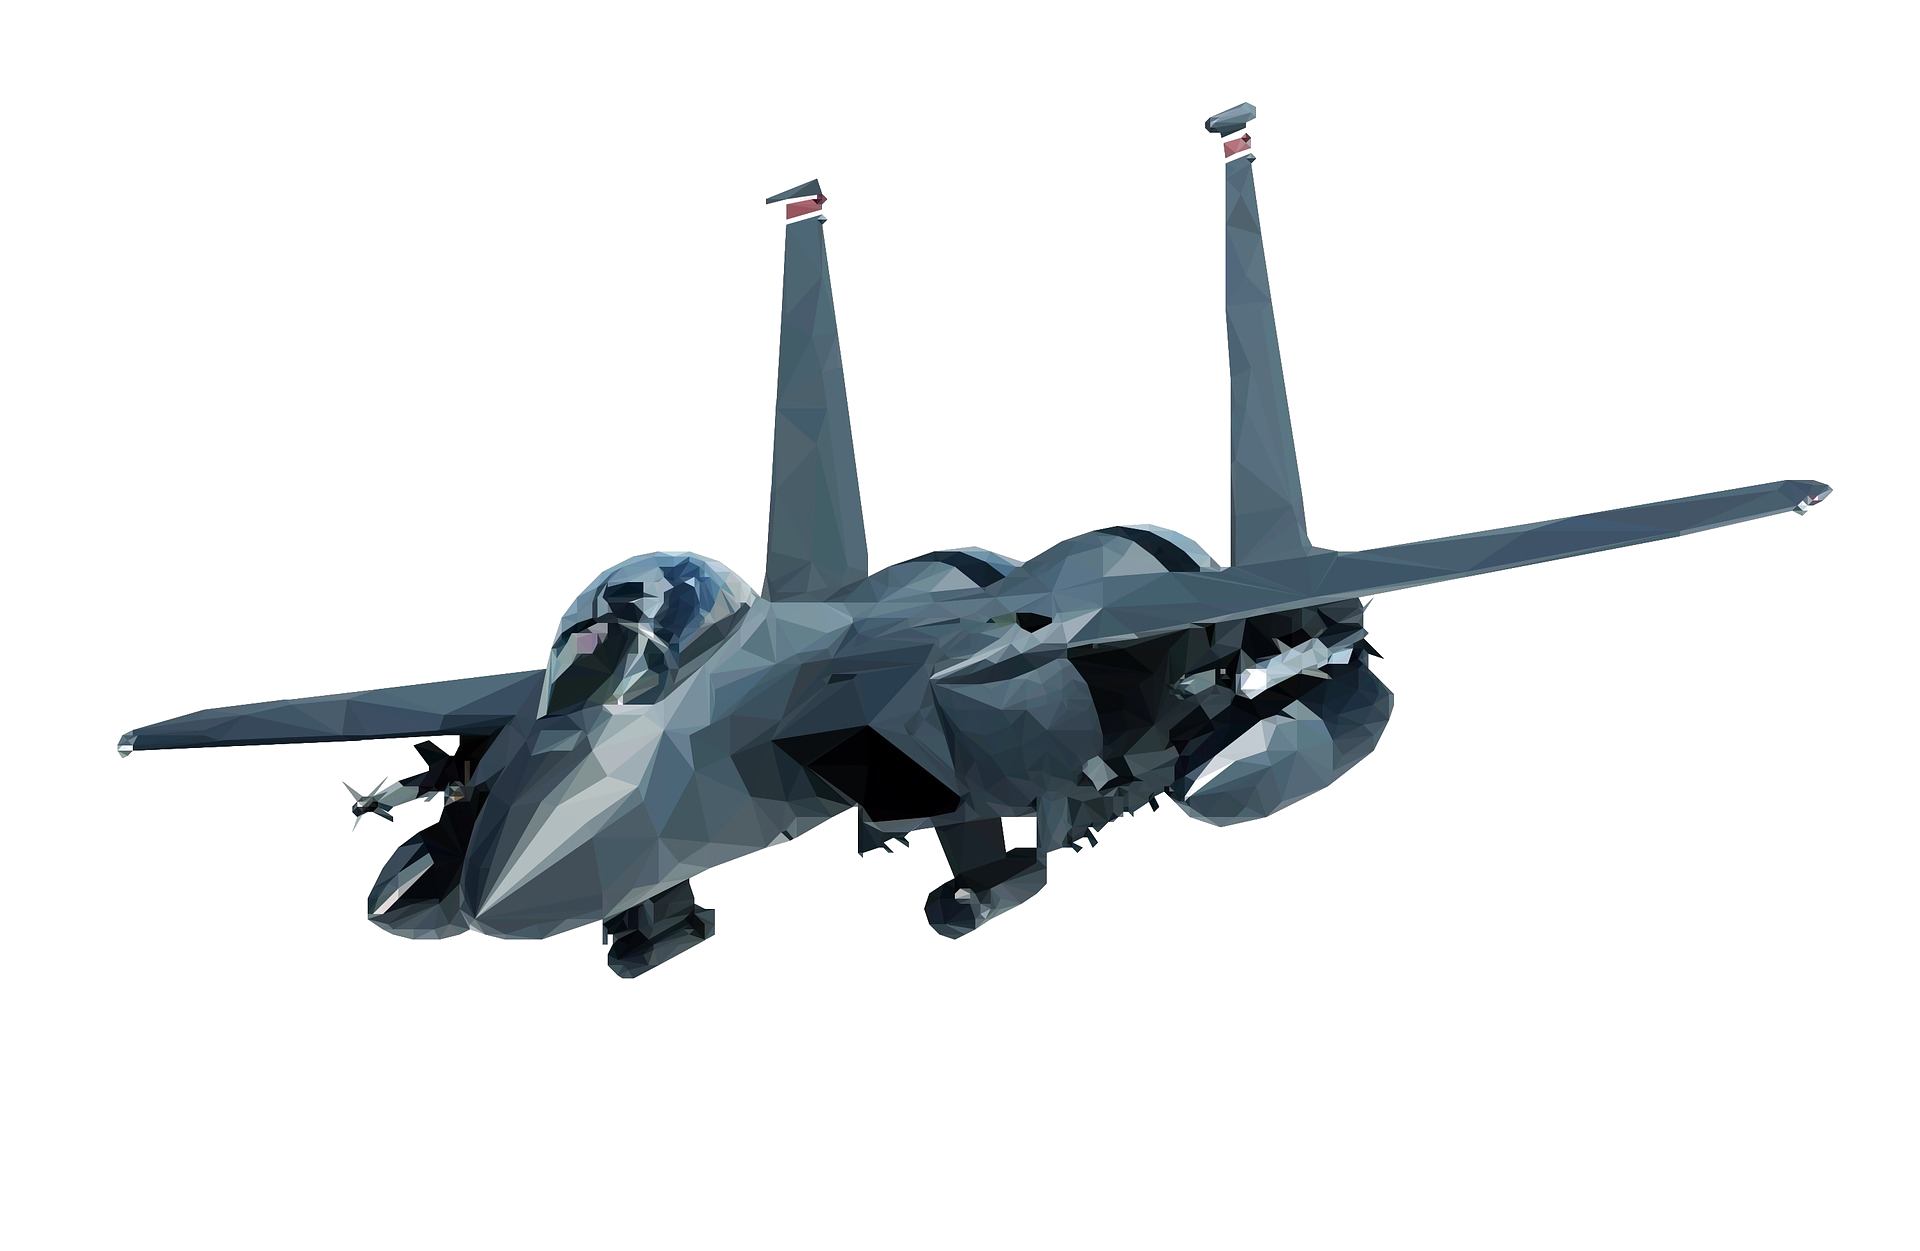 Air Force Military Jet Png Image Military Jets Air Force Jet